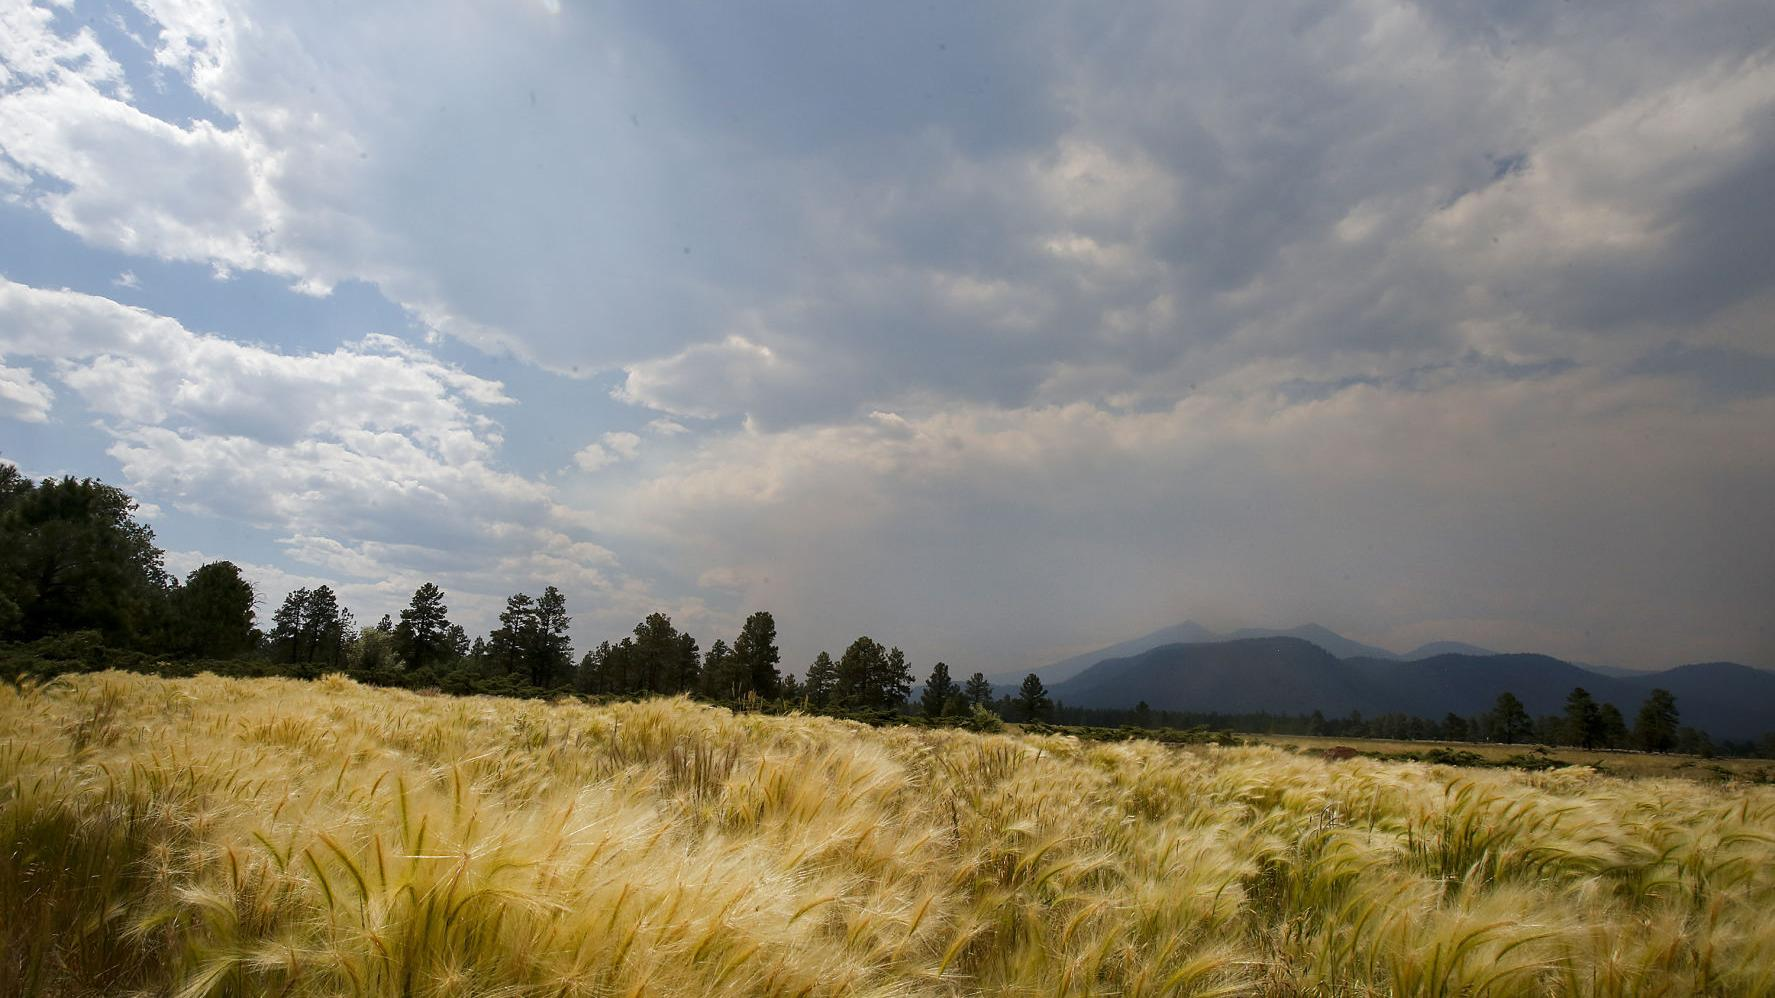 Too smoky to walk the dog in Flagstaff